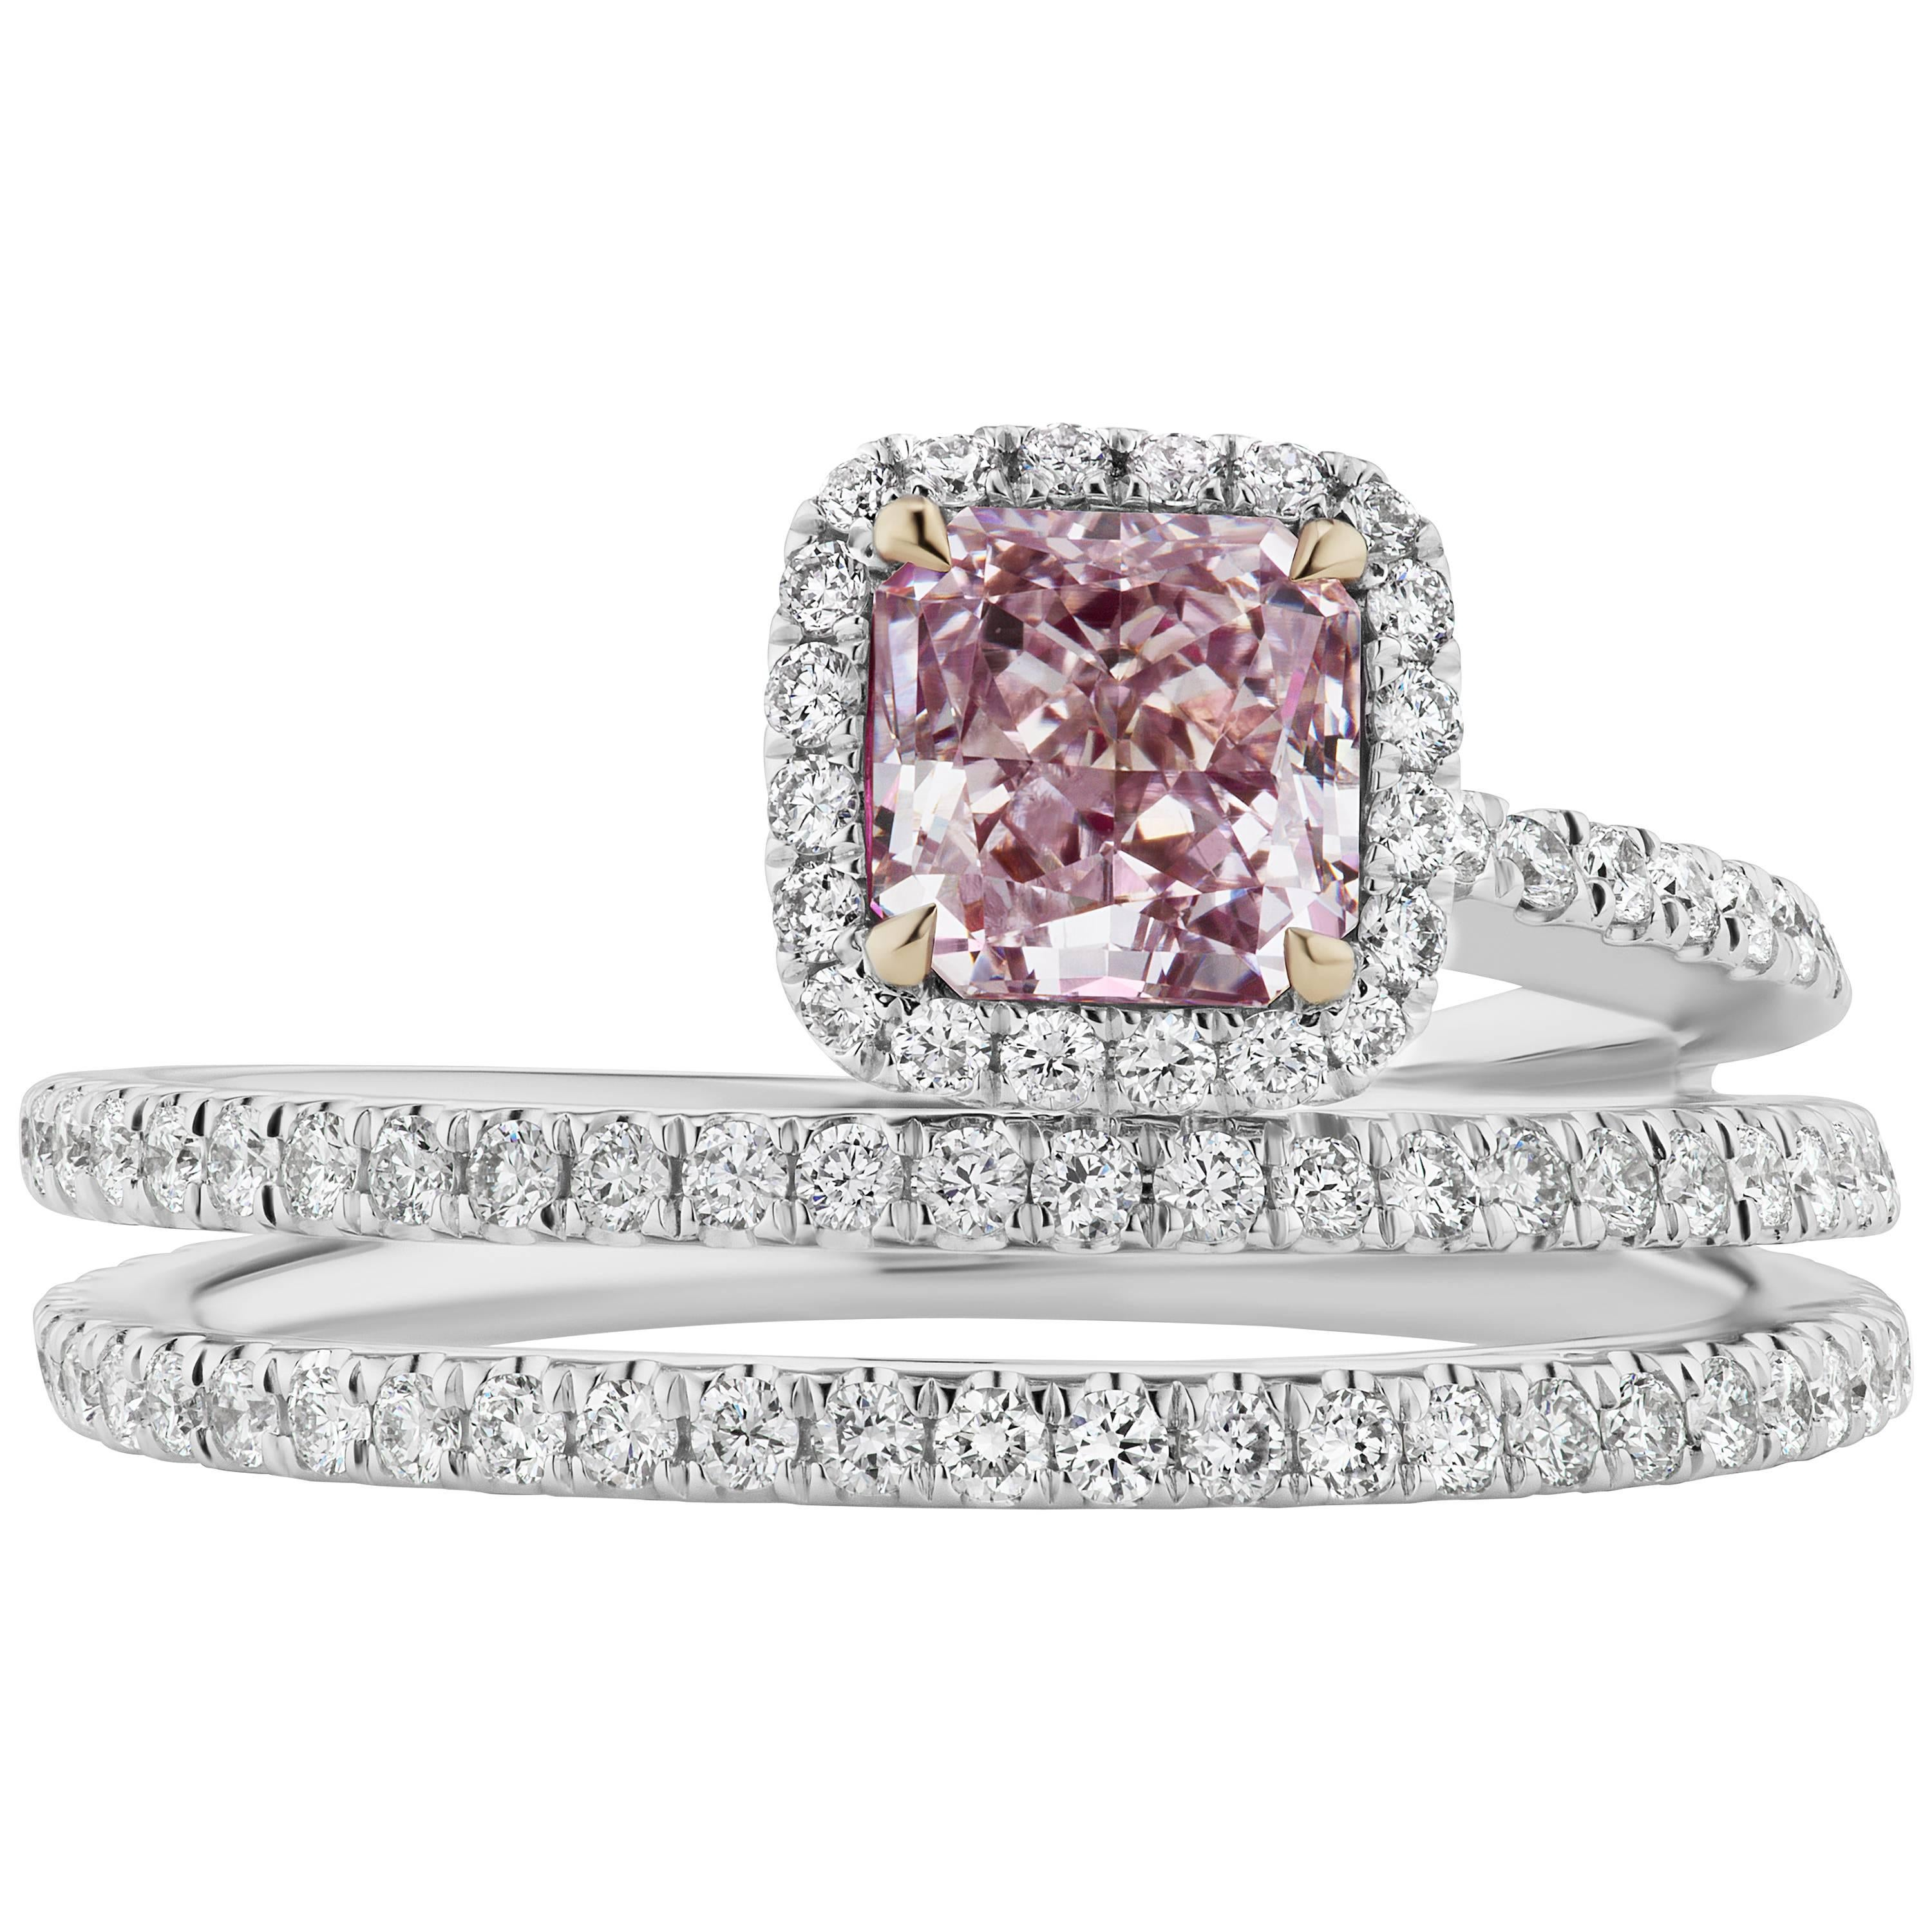 SCARSELLI Engagement Rings